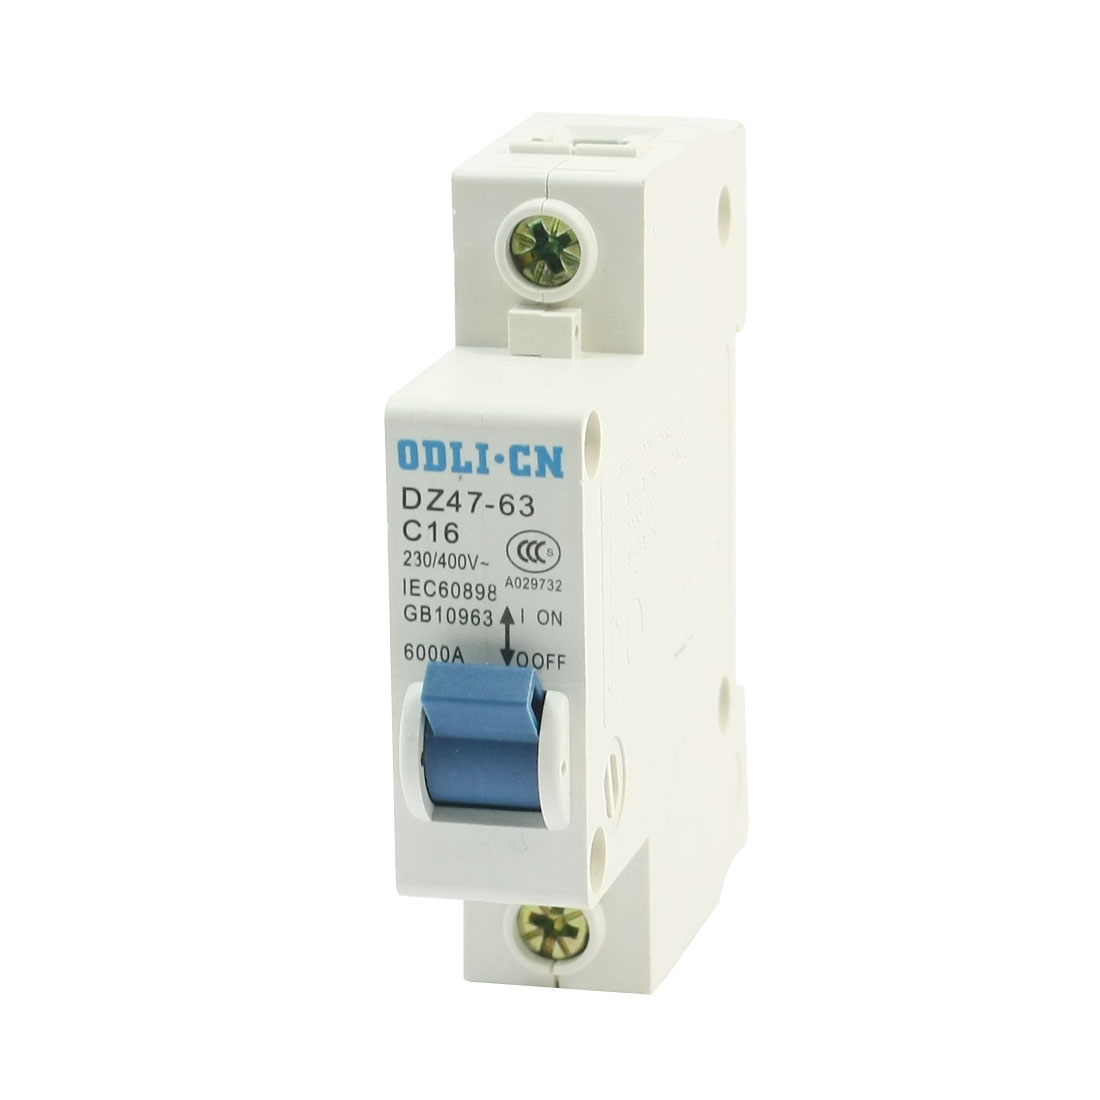 35mm DIN Rail Mounted 1 Pole Miniature Circuit Breaker AC 230/400V 16A